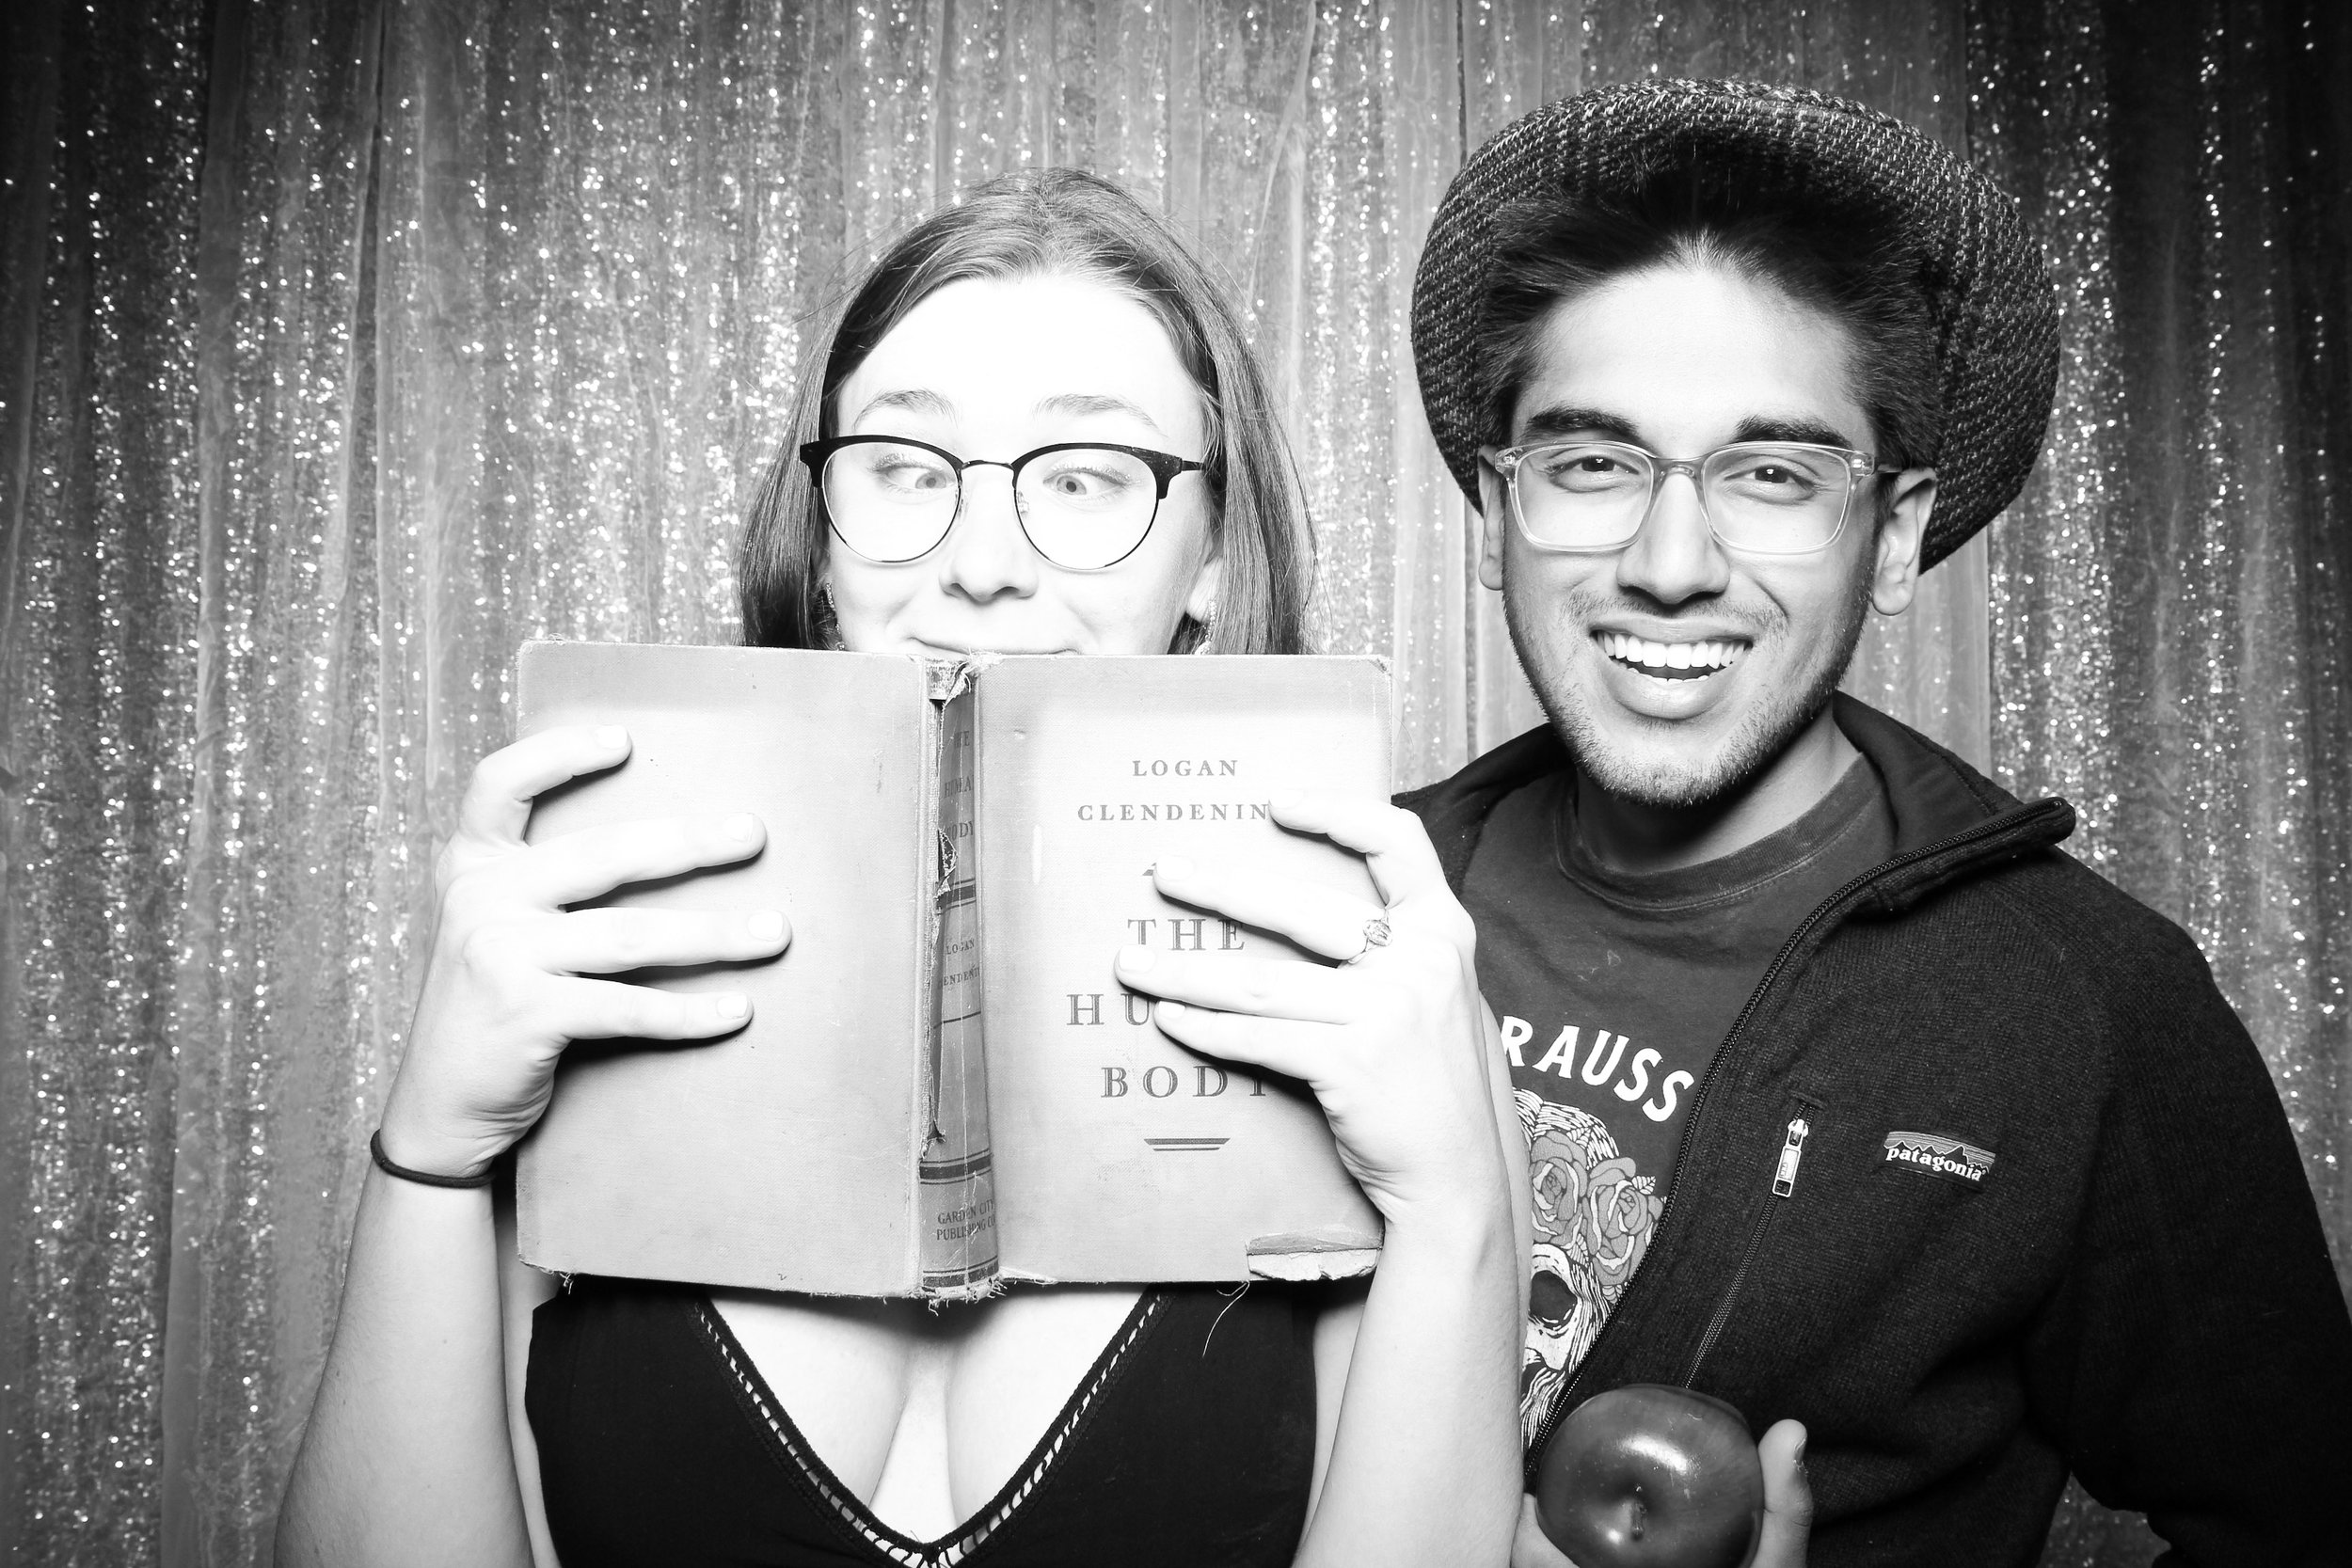 Chicago_Vintage_Wedding_Photobooth_Hyde_Park_04.jpg